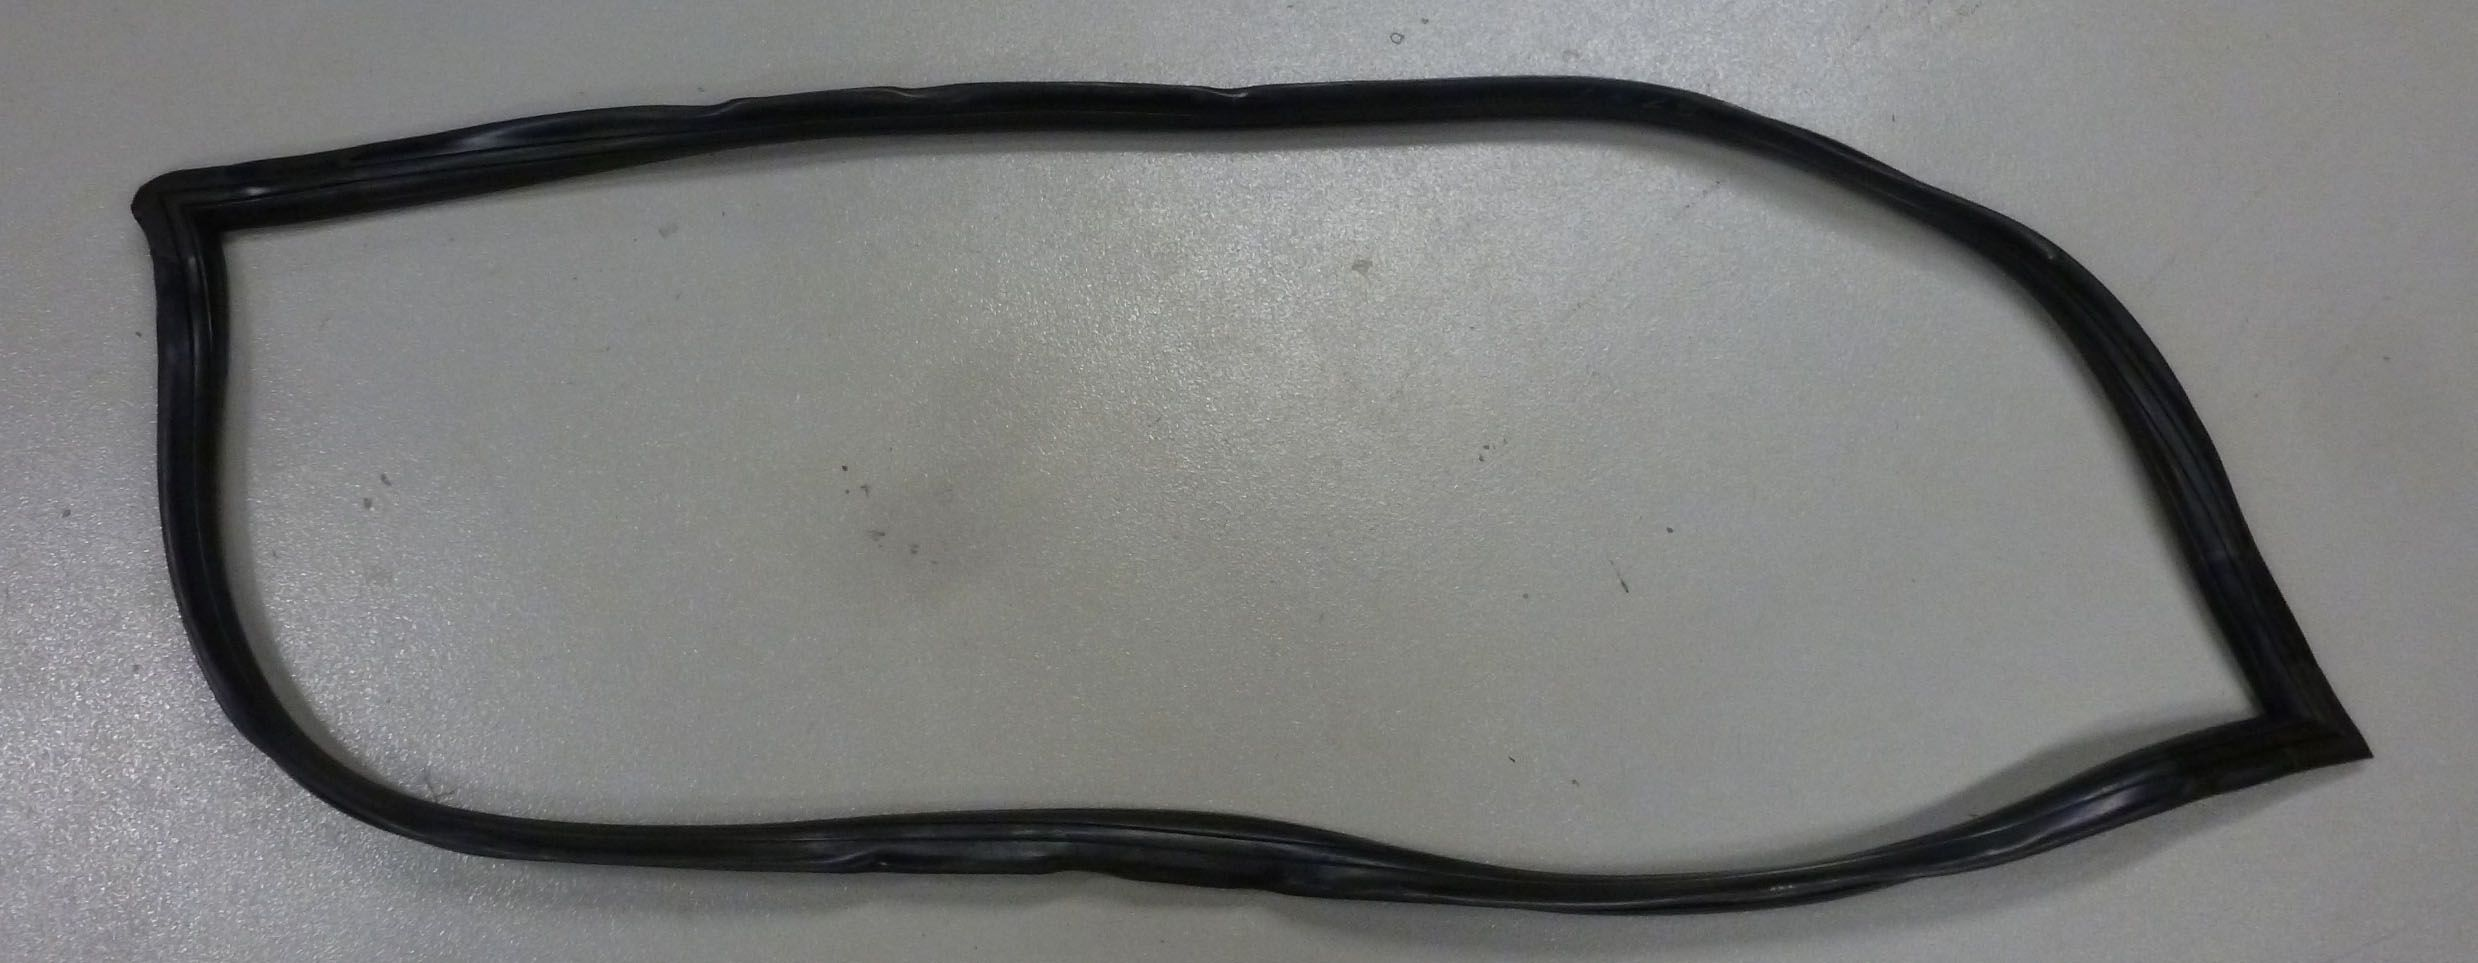 1980-1996 Ford Bronco Rear Window Gaskets